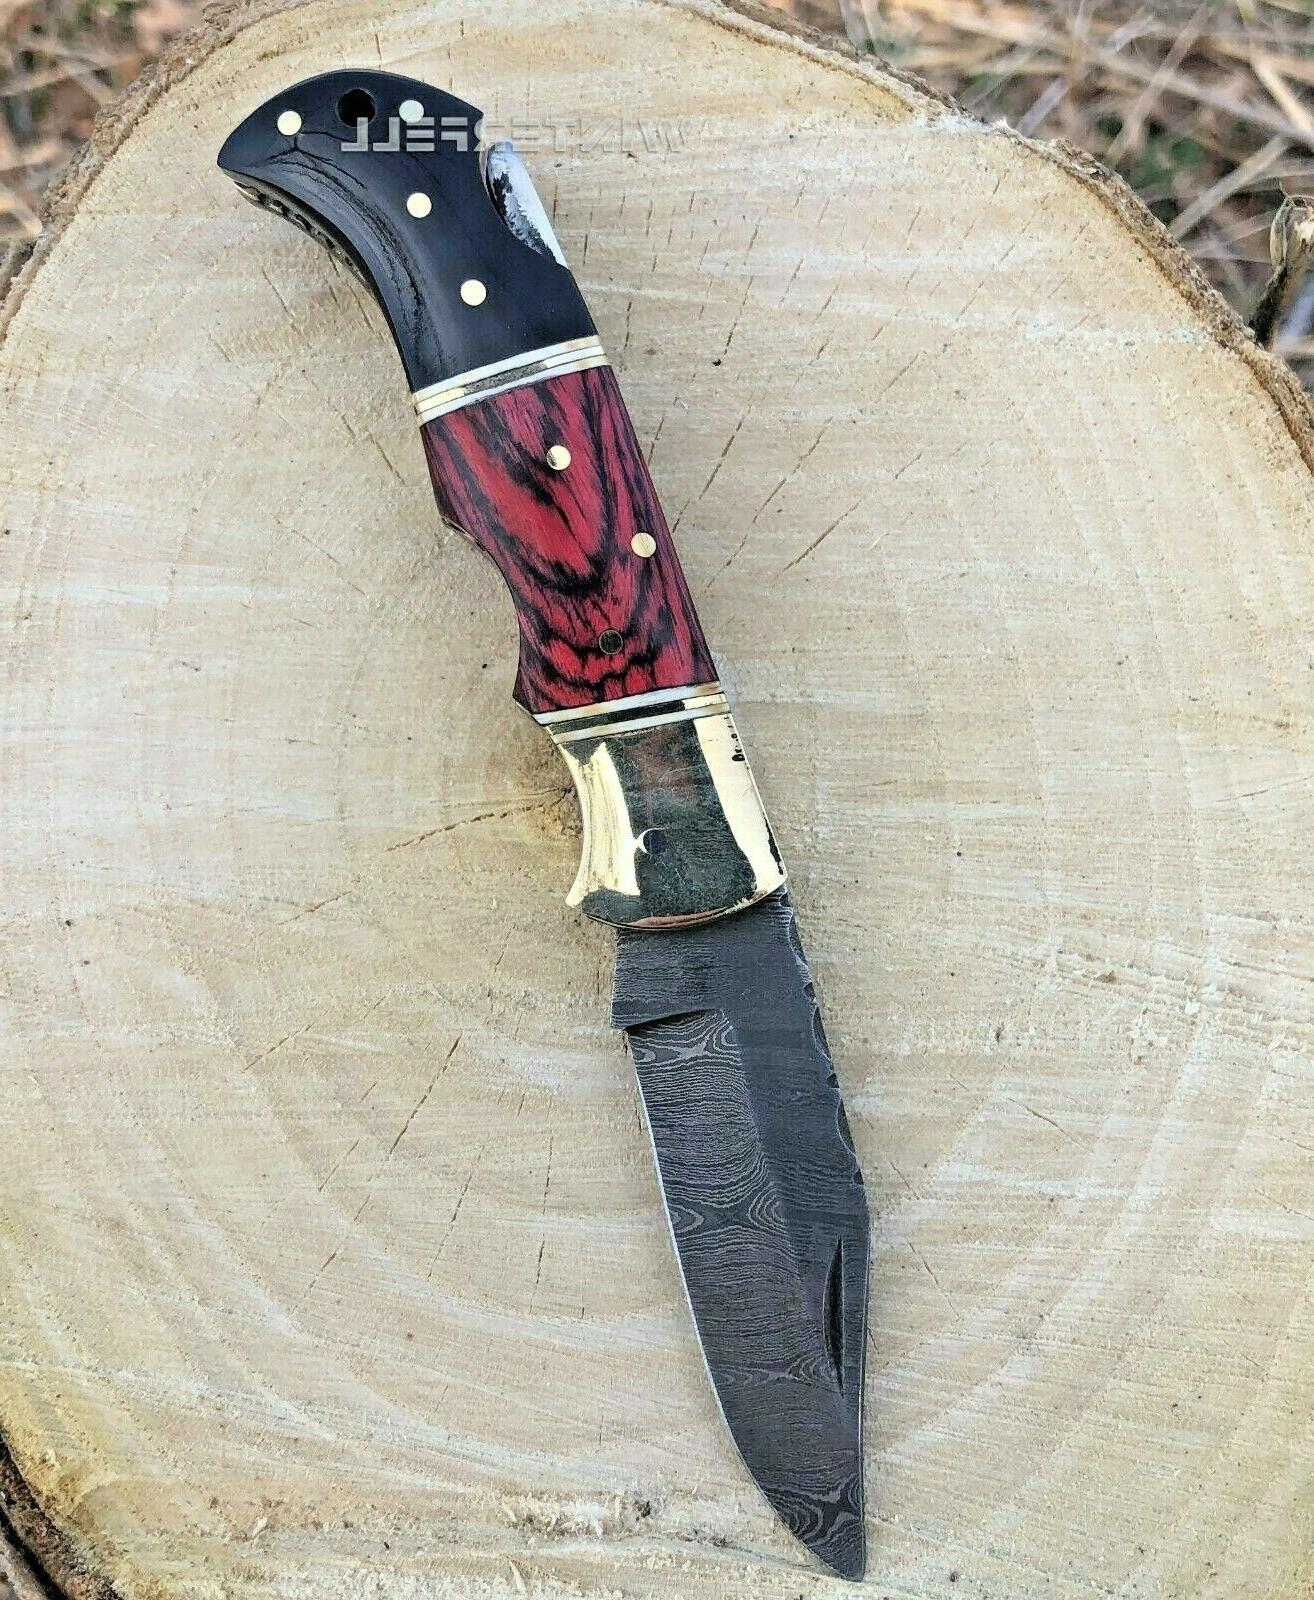 Damascus Knife With Sheath